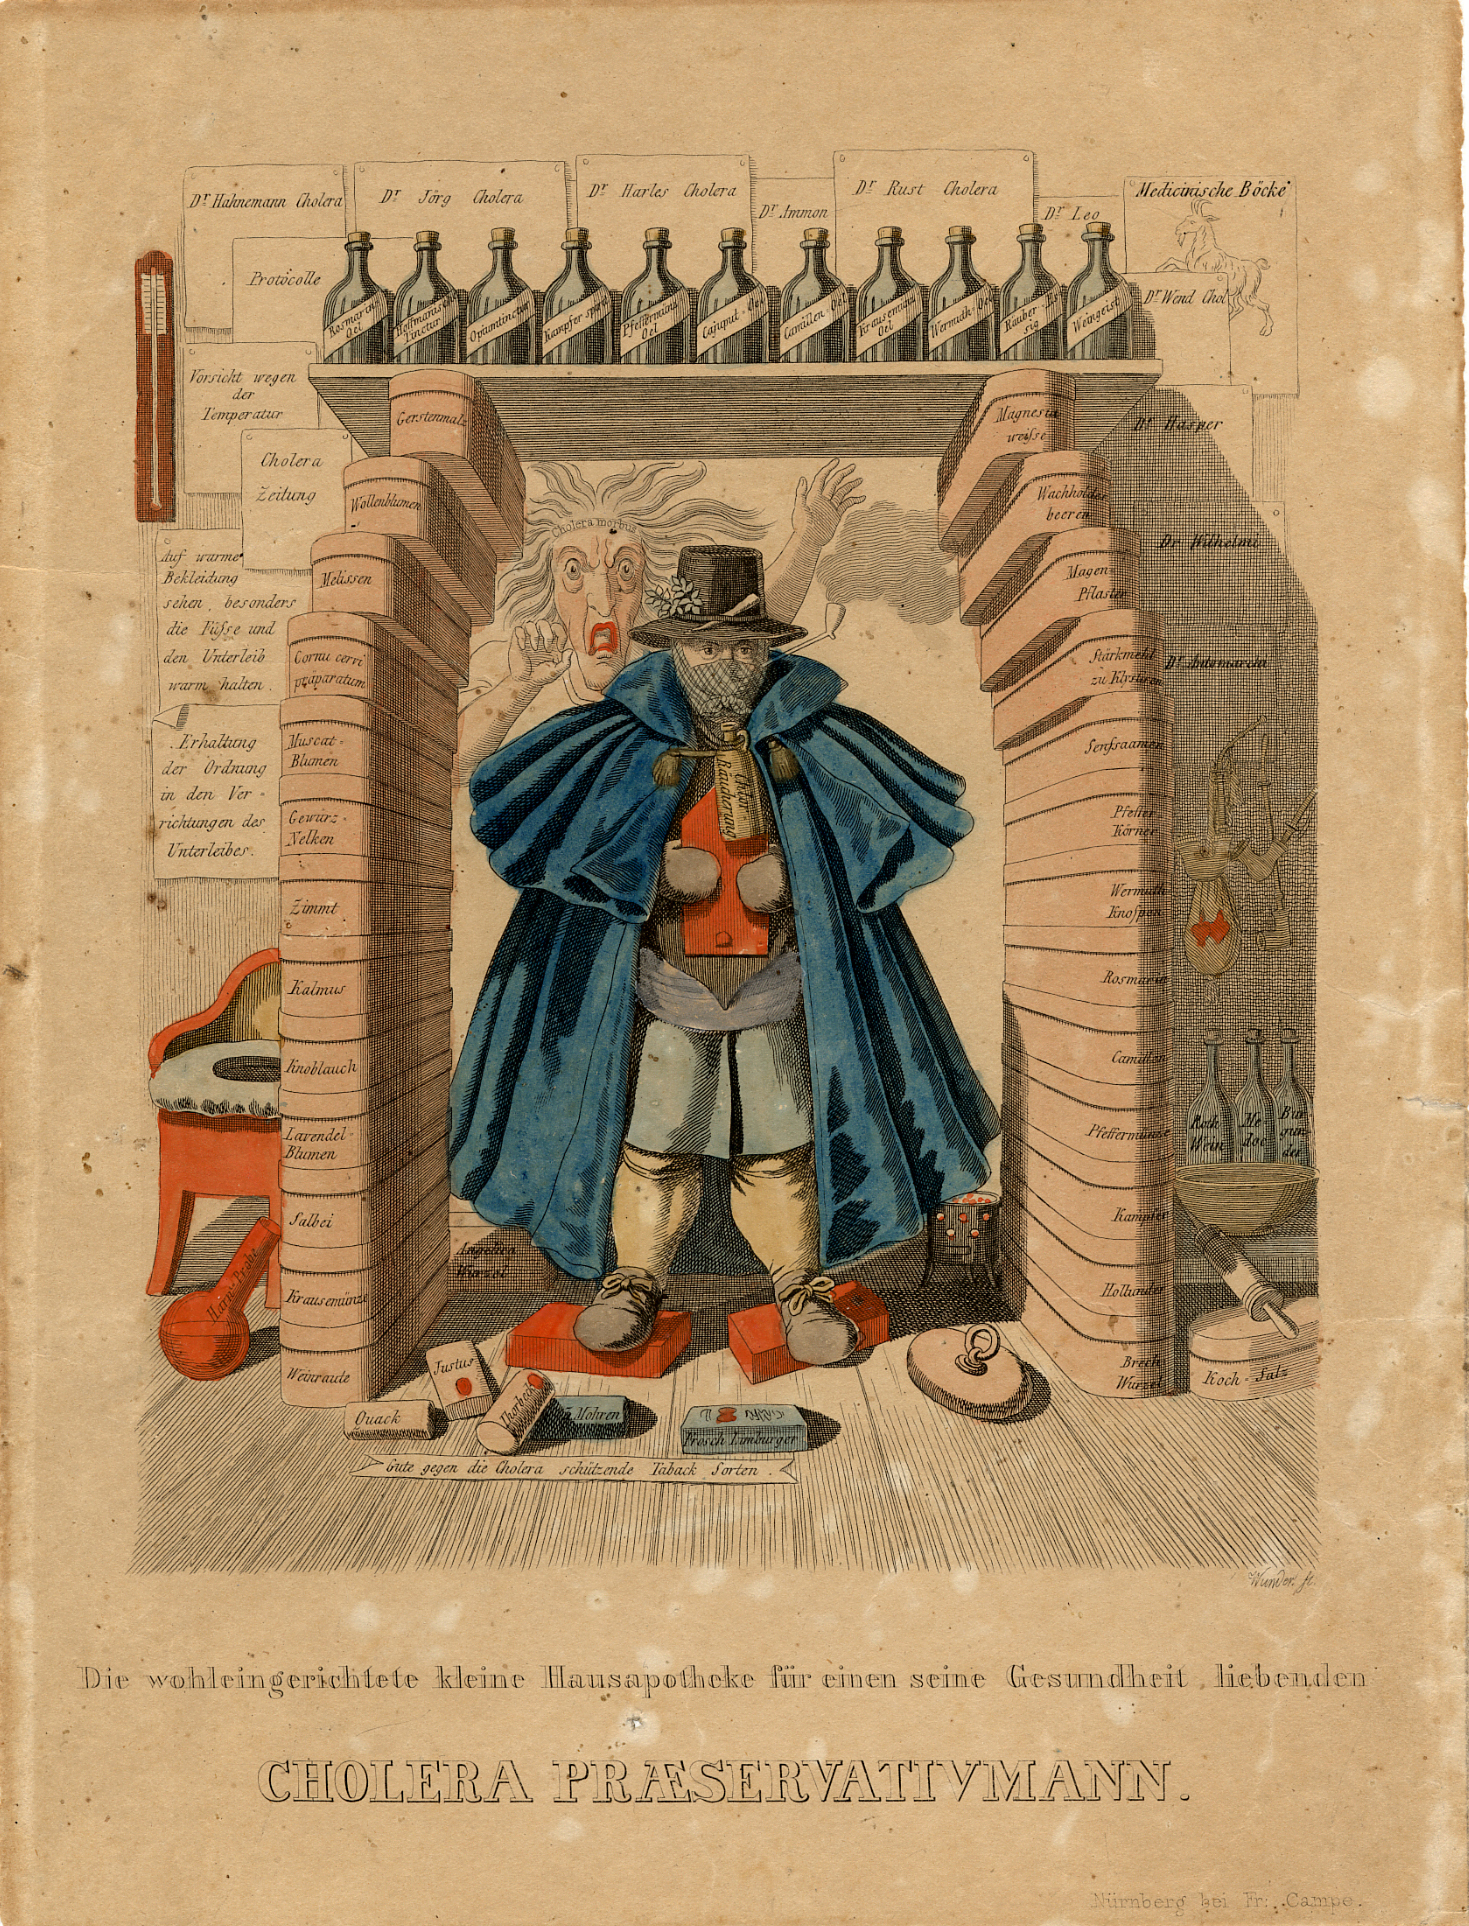 A colored etching depicting a man attempting to protect himself from Cholera. He is wearing a mask and a large overcoat, and holding a clay pipe. He is surrounded by boxes of herbs. Behind him a ghostly image represents Cholera.